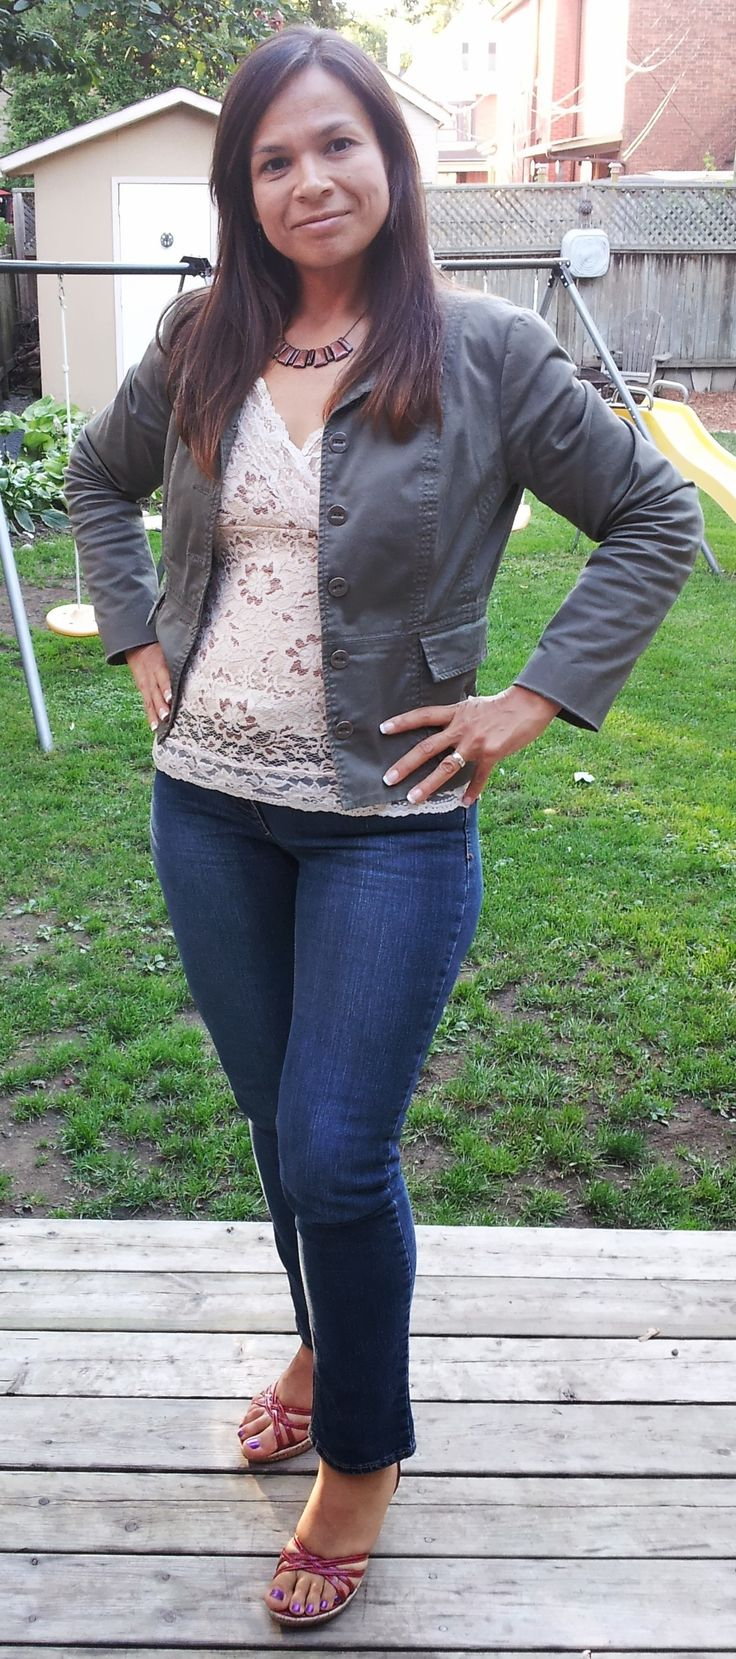 "My ""back to work"" fall outfit. Jacket $8.99, top $3.50, shoes $5. All #valuevillage. Jeans, necklace and earrings purchased with #Reitmans gift card so they were free for me! #frugalfashion"